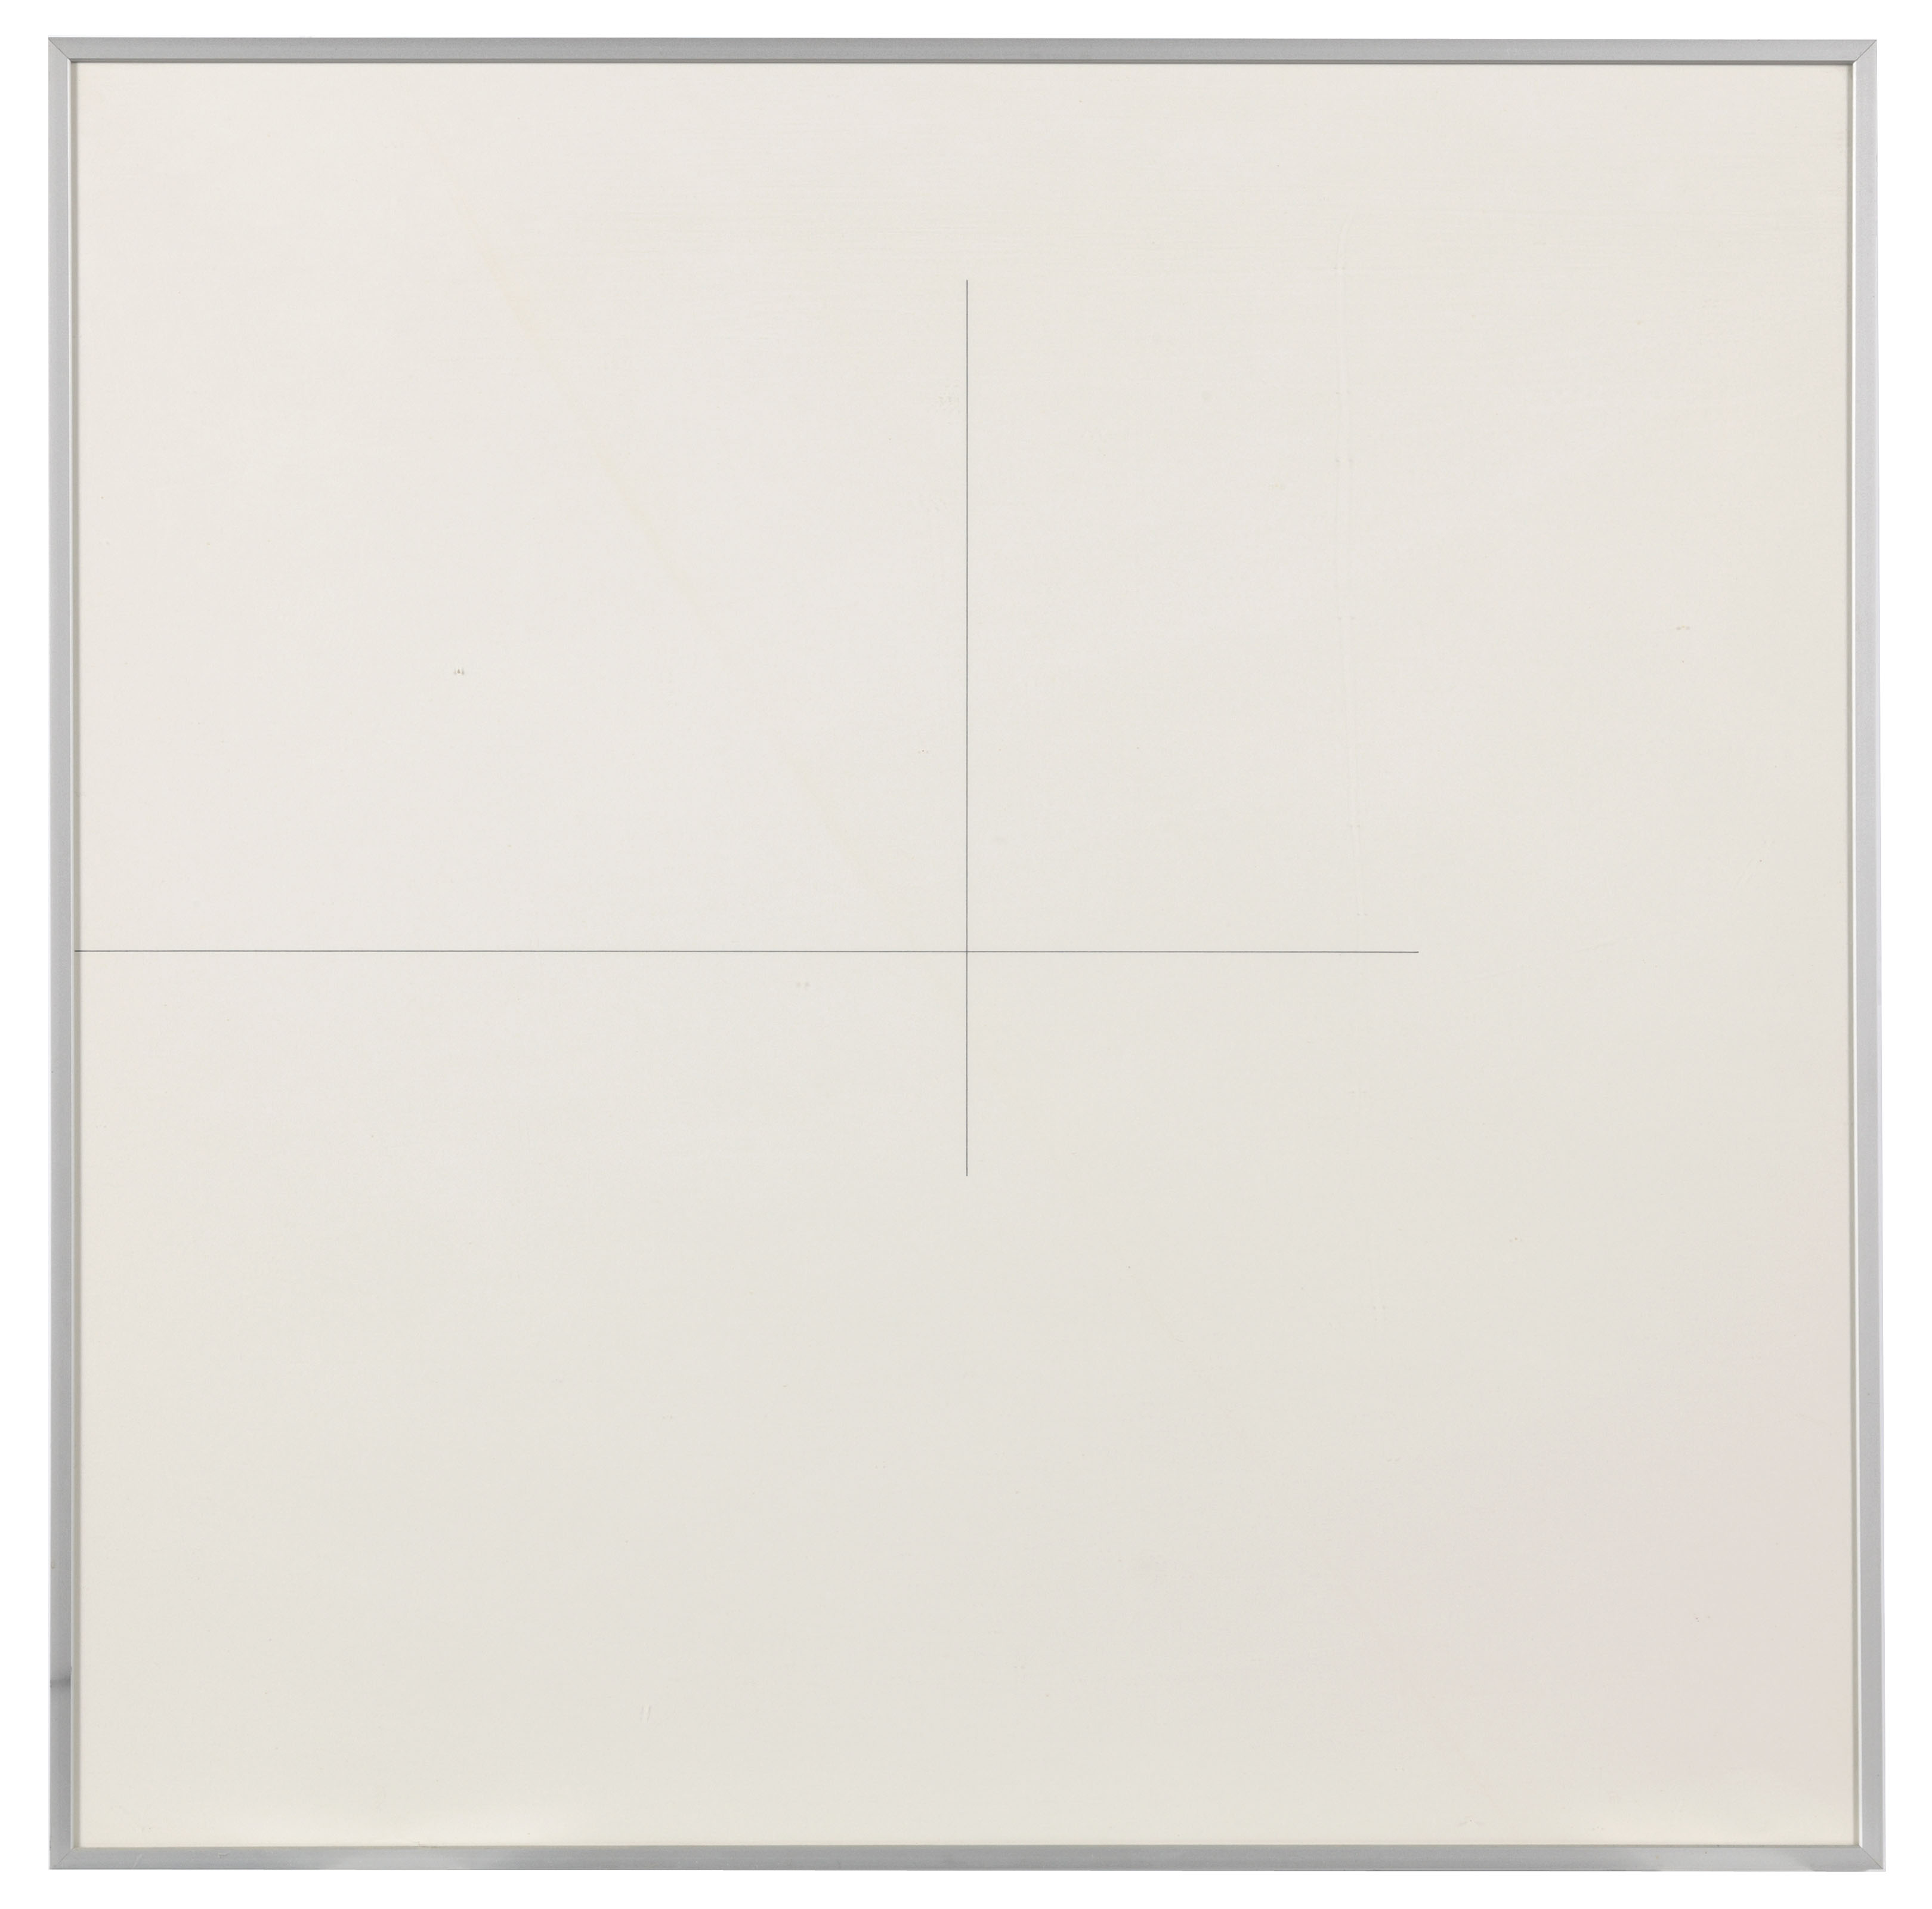 Untitled (Line Drawing)